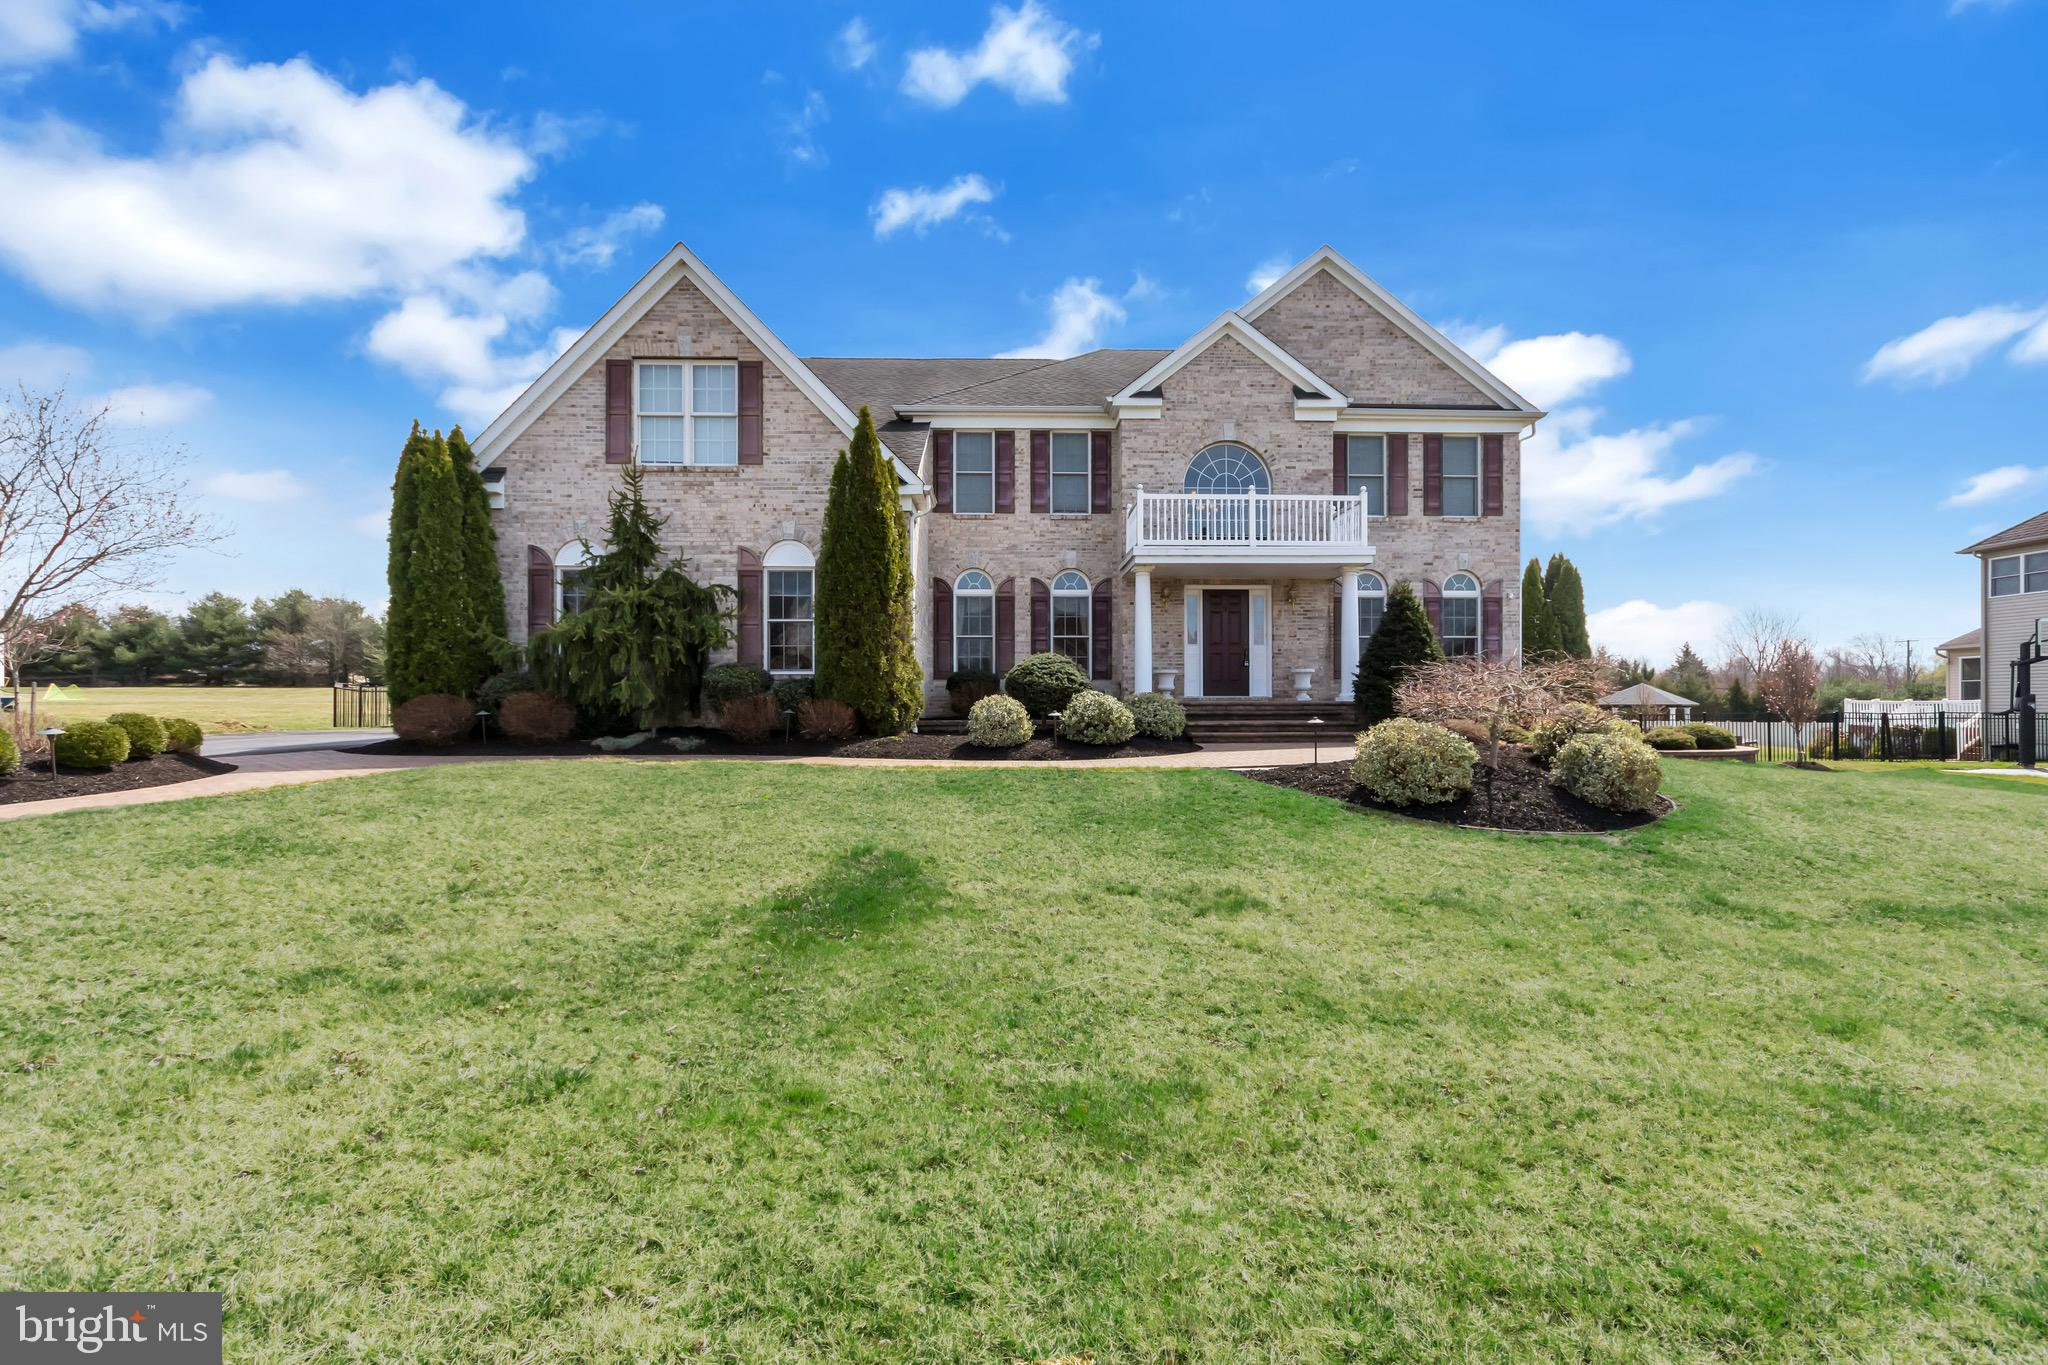 6 CREEK LANE, MULLICA HILL, NJ 08062